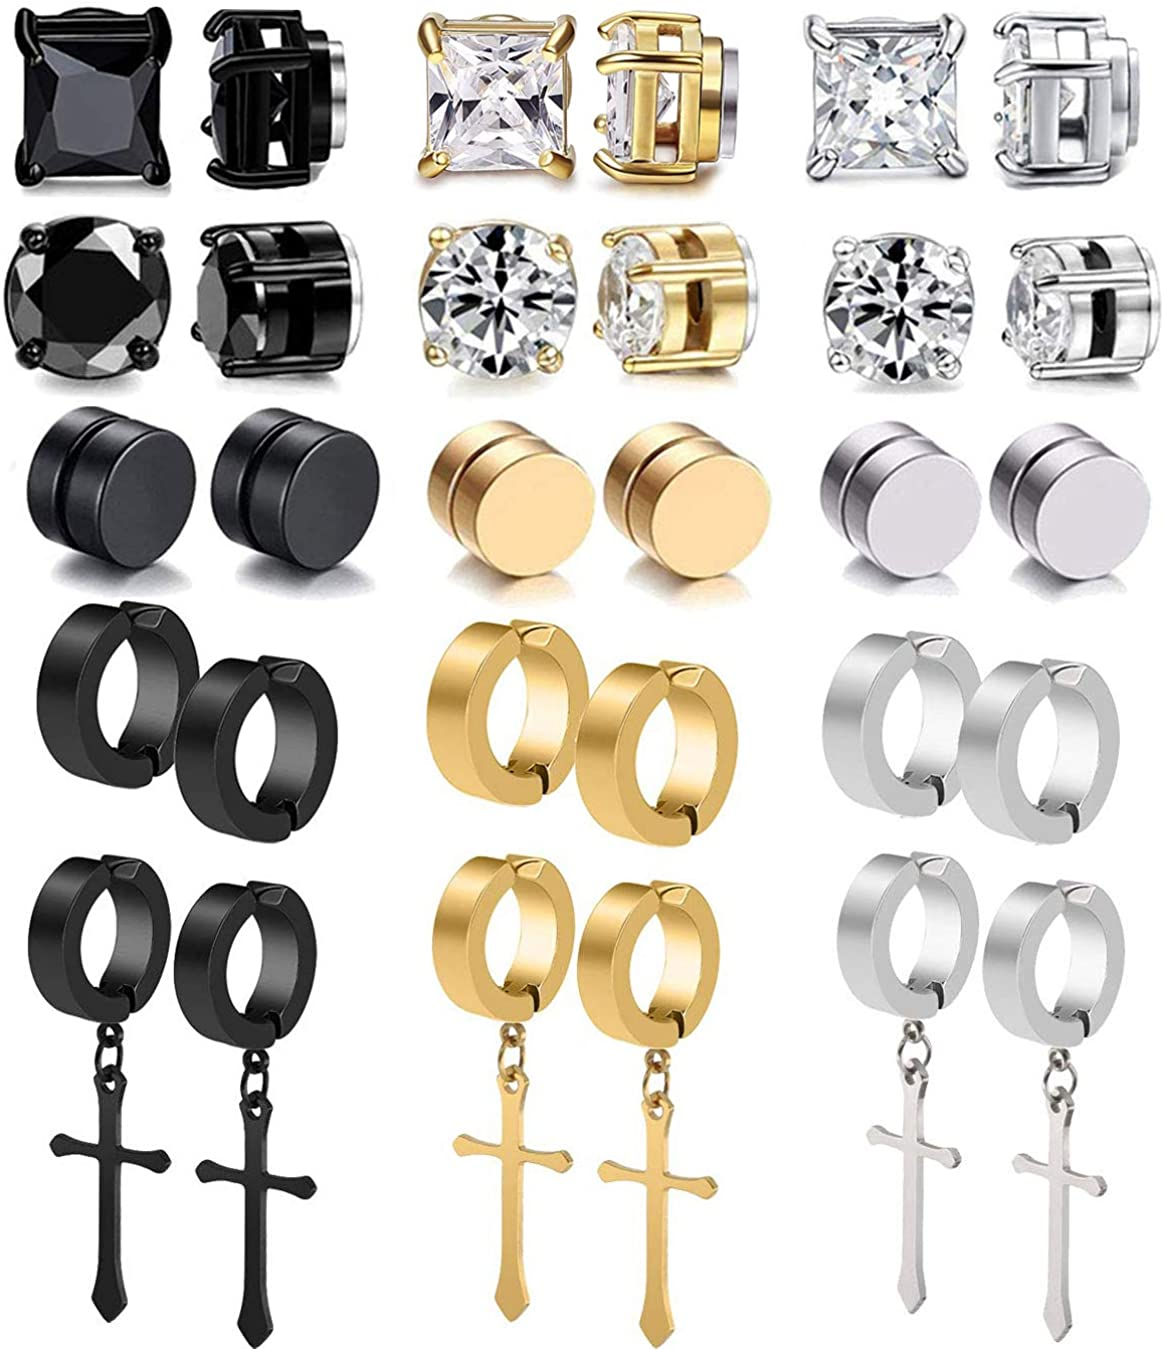 MOZAKA 10 Pairs CZ Stainless Steel Non Pierced Magnetic Stud Earrings For Men Cool Stud Dangle Chain Huggie Hinged Earring Set